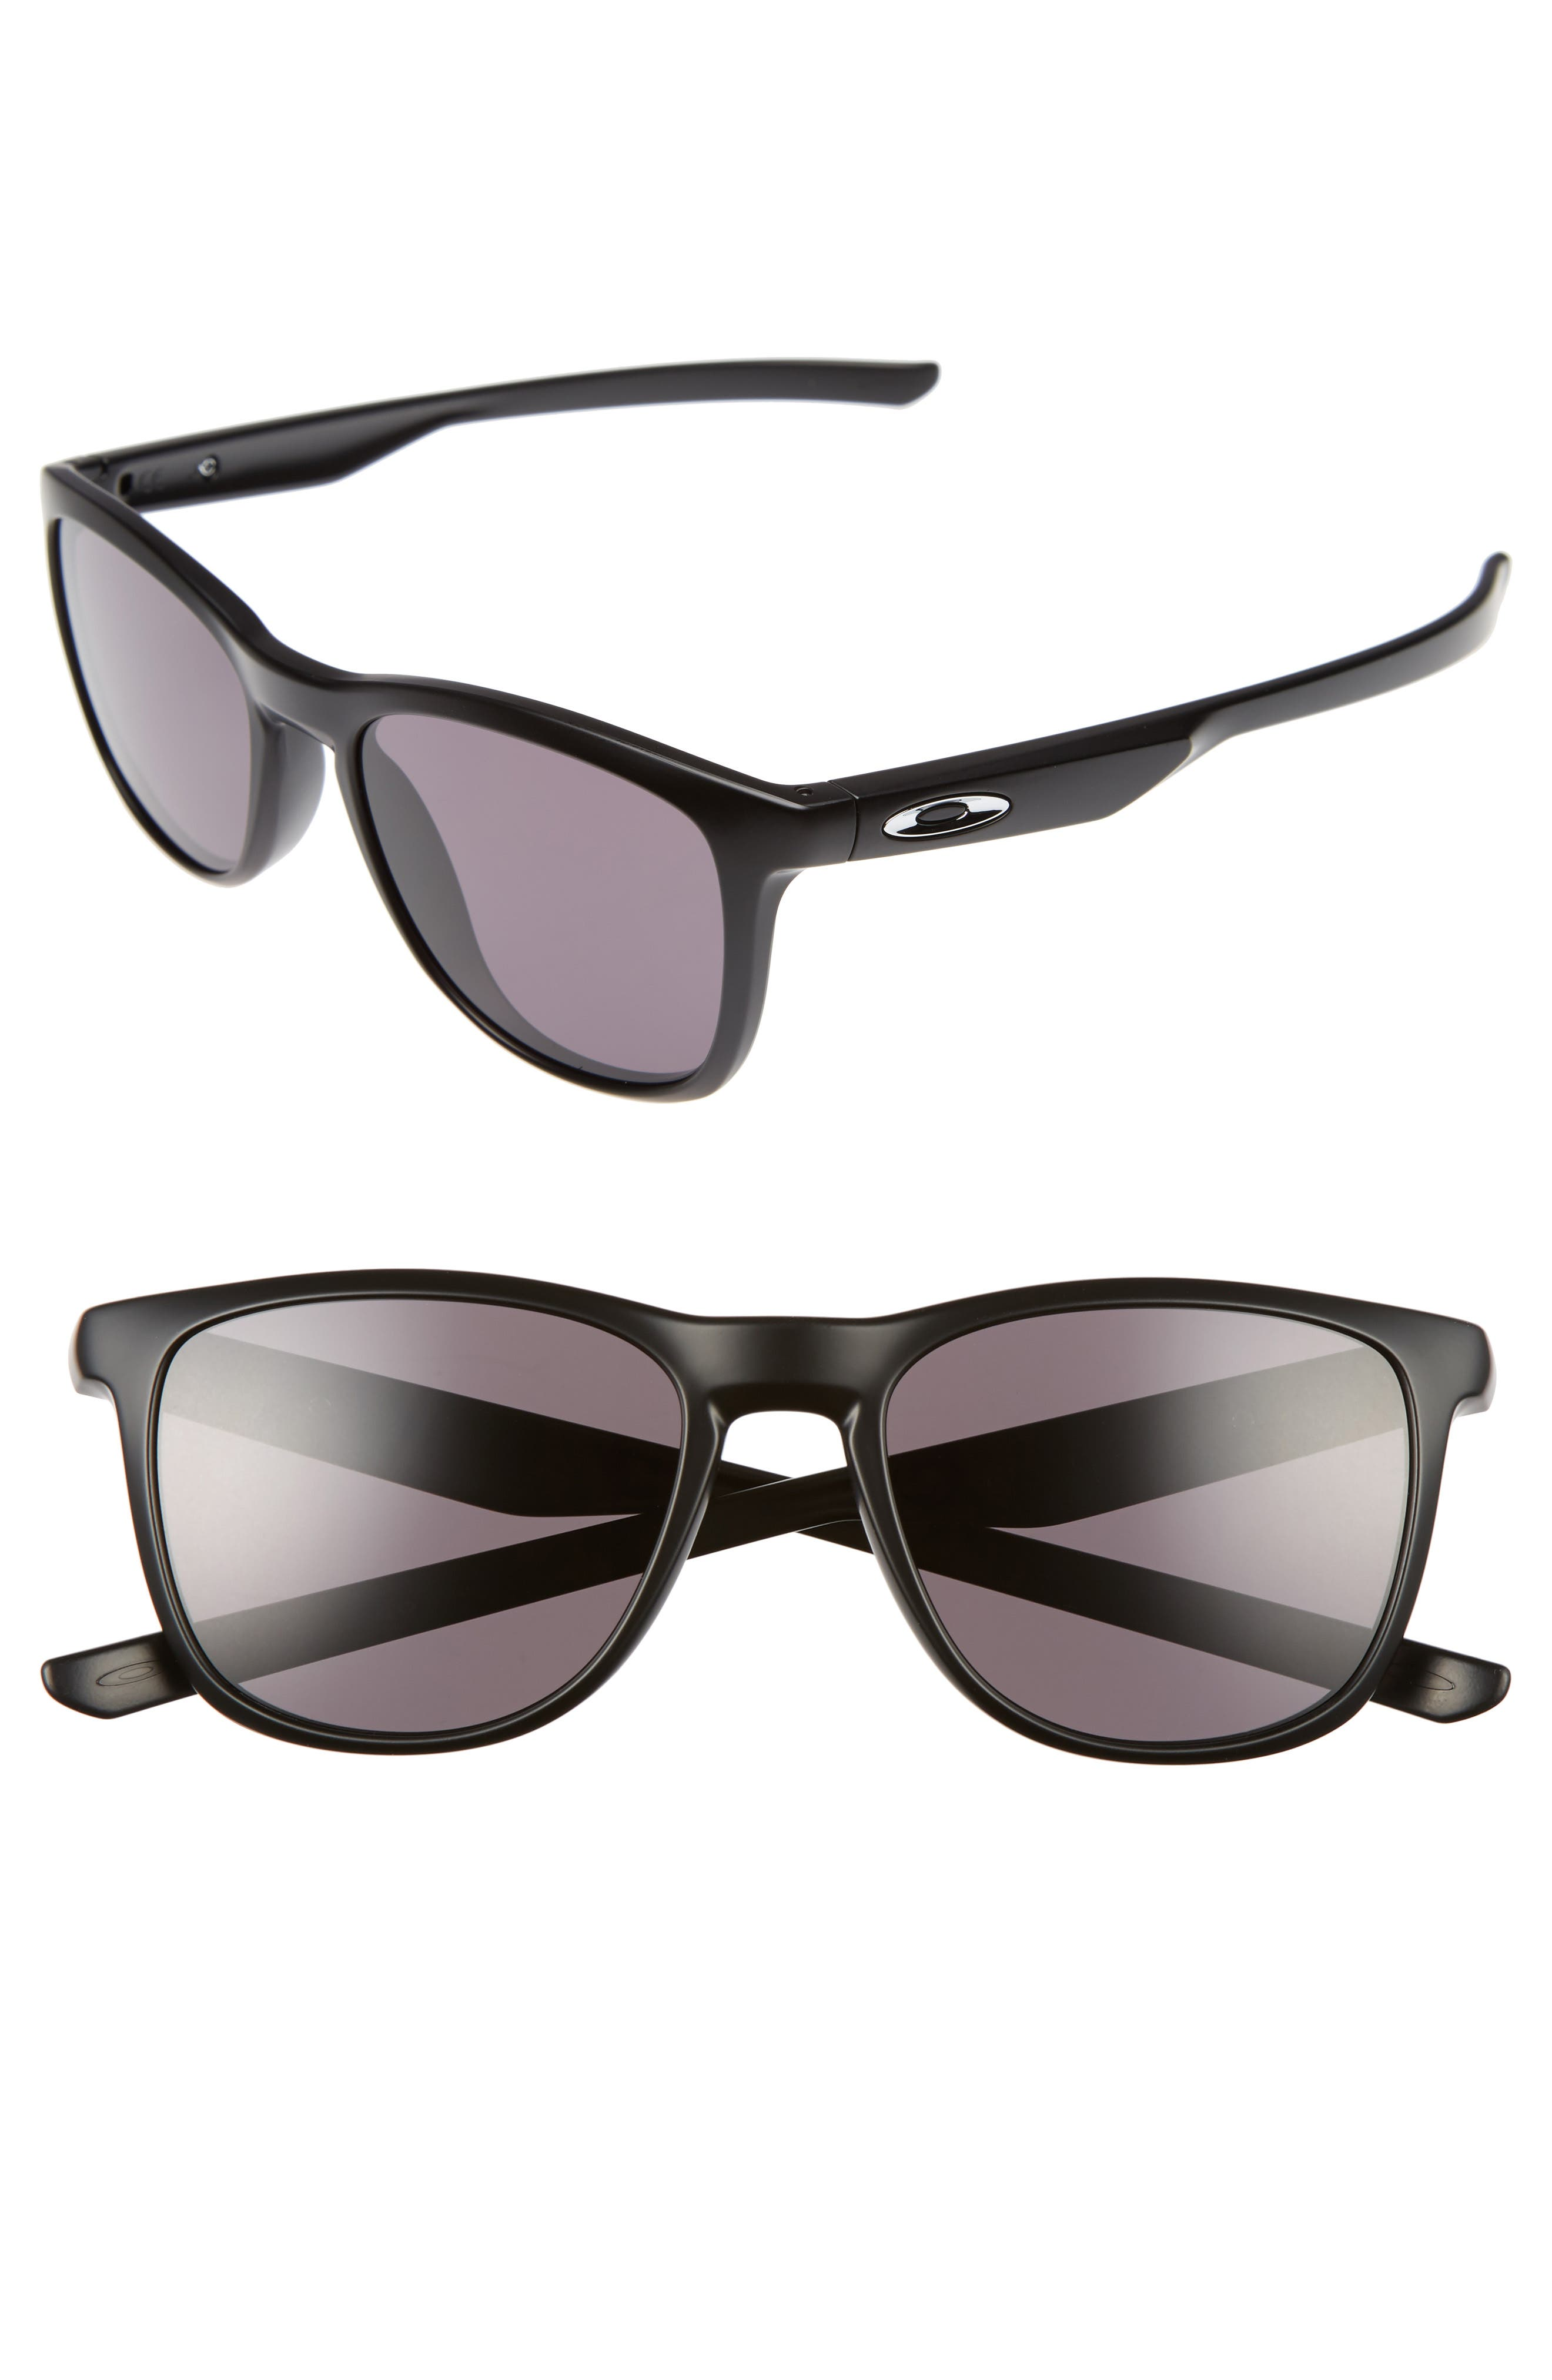 Trillbe X 52mm Sunglasses,                             Main thumbnail 1, color,                             001